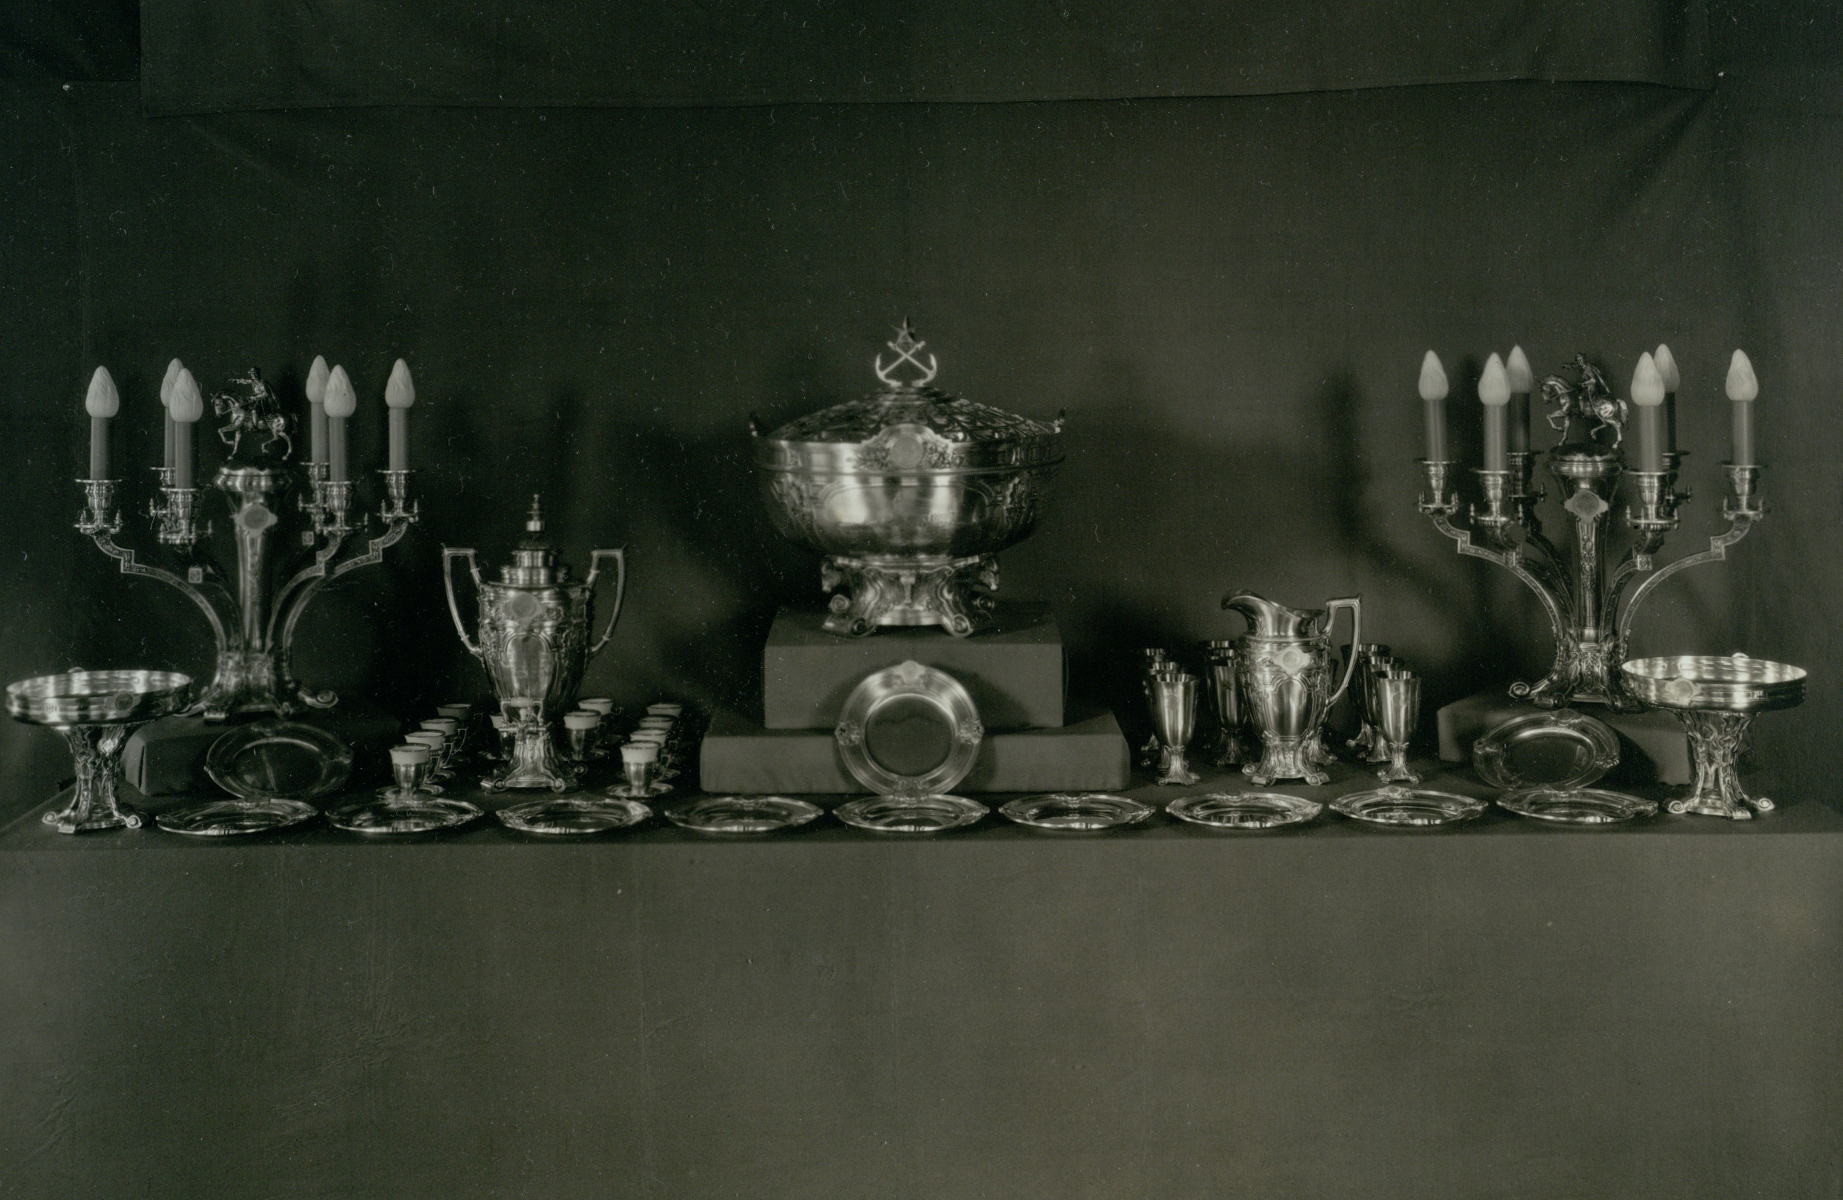 Part of the Silver Service Given by the City of Houston (University of Houston)